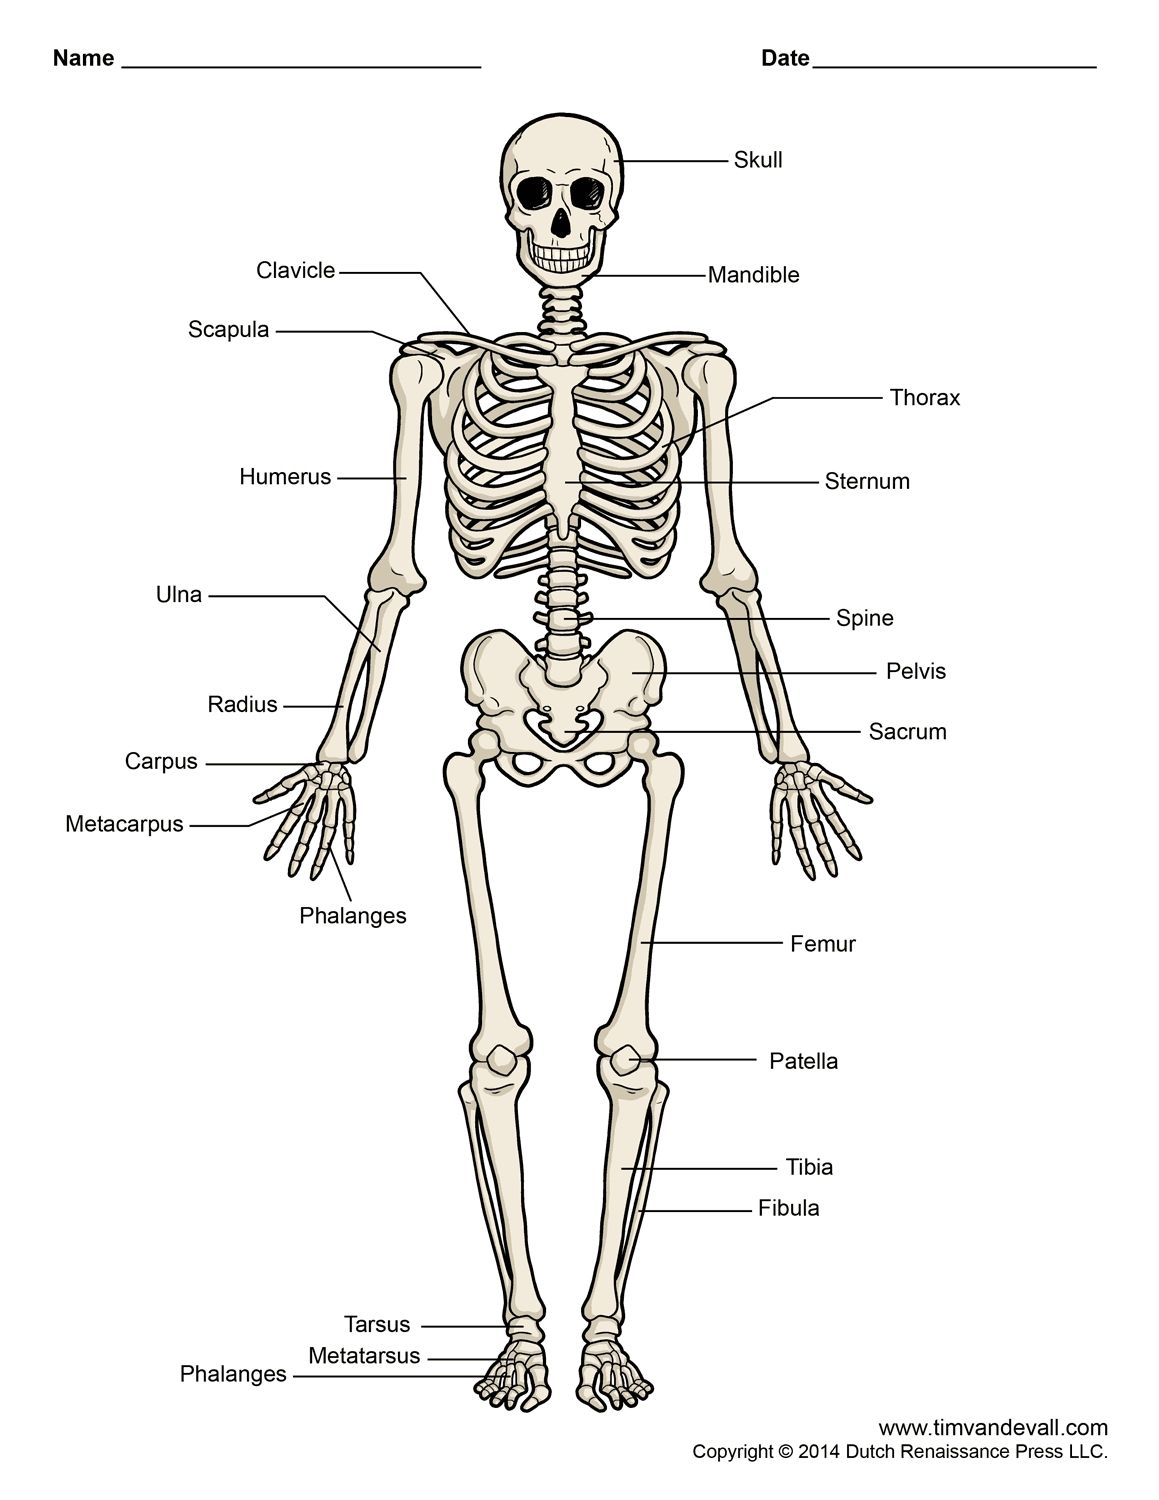 photo about Printable Skeleton Parts named Diagram Of Human Skeleton Categorised Printable Human Skeleton